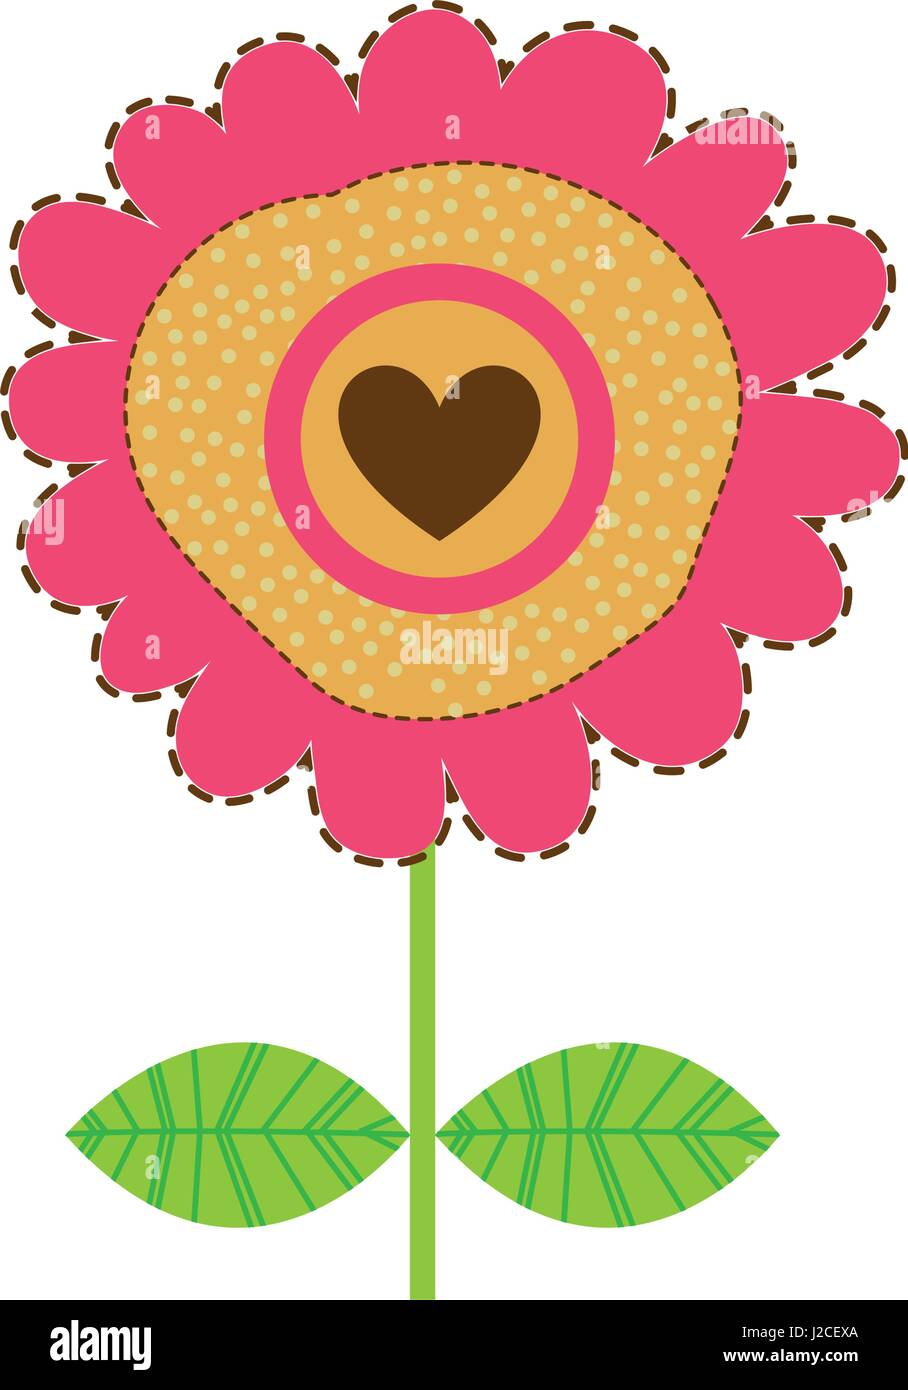 white background with magenta sunflower with emblem of heart - Stock Vector